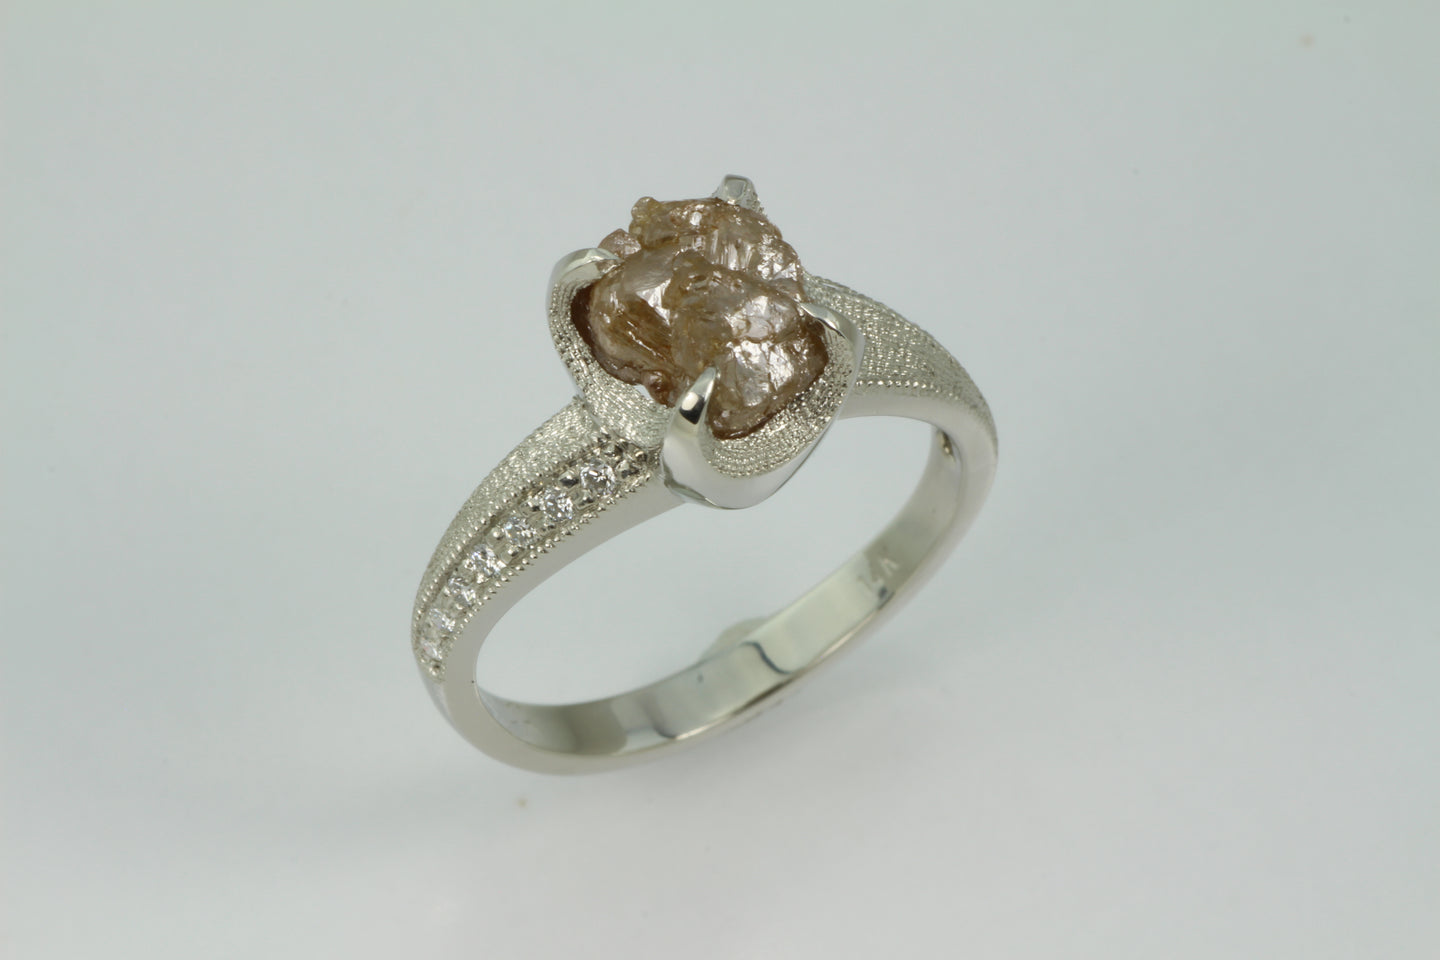 Natural colored diamond crystal and cut diamond engagement ring